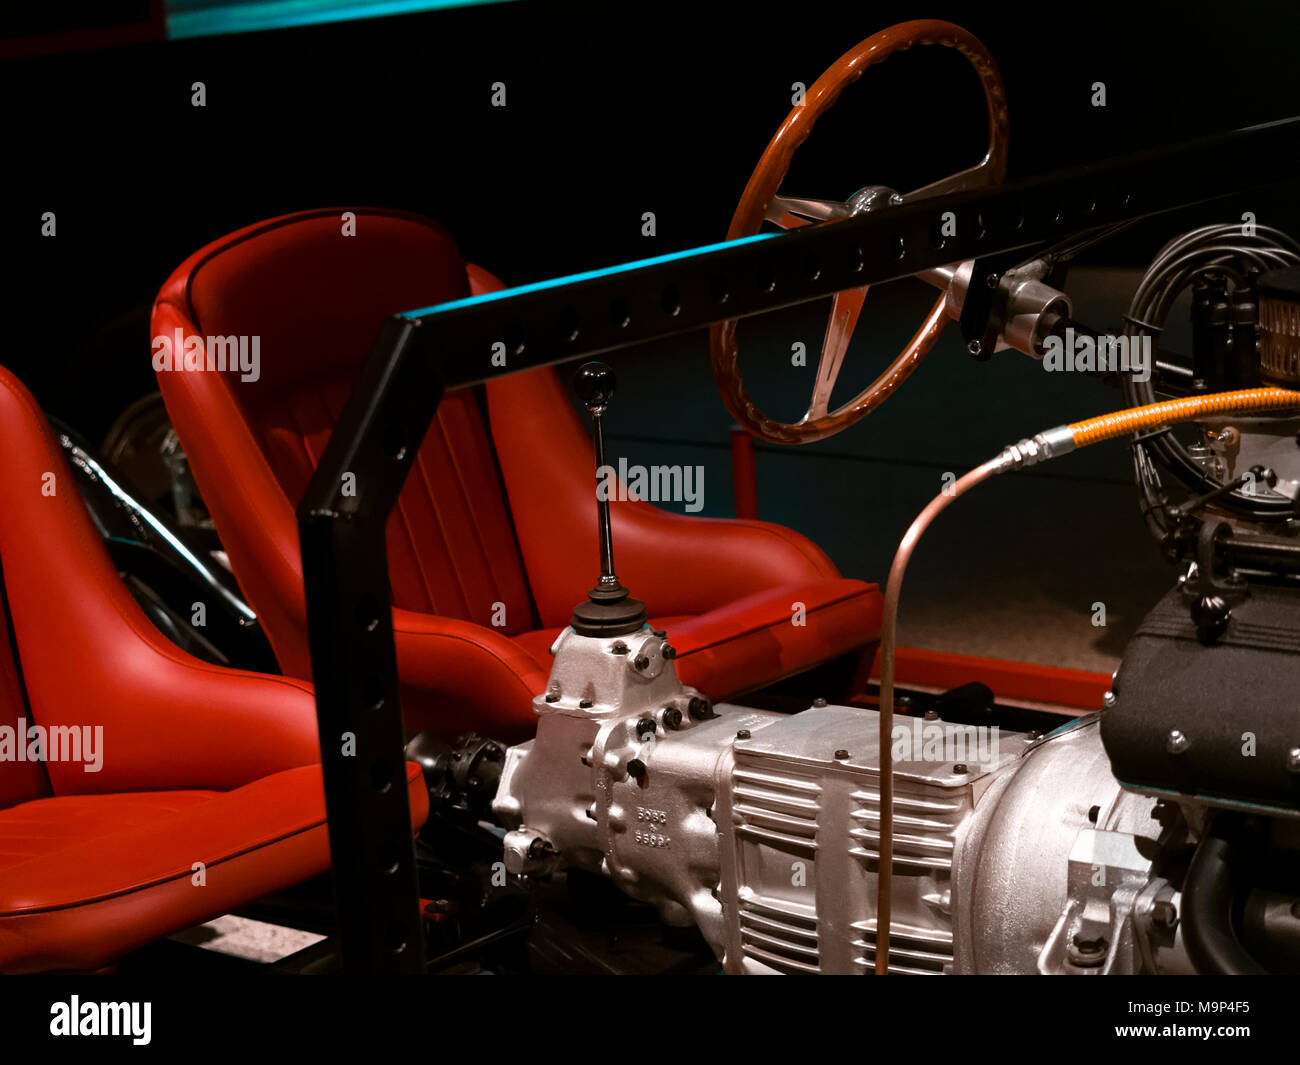 Ferrari 250 GT Chassis only from 1957, Ferrari is an Italian Sports Car manufacturer founded in Italy 1947. - Stock Image